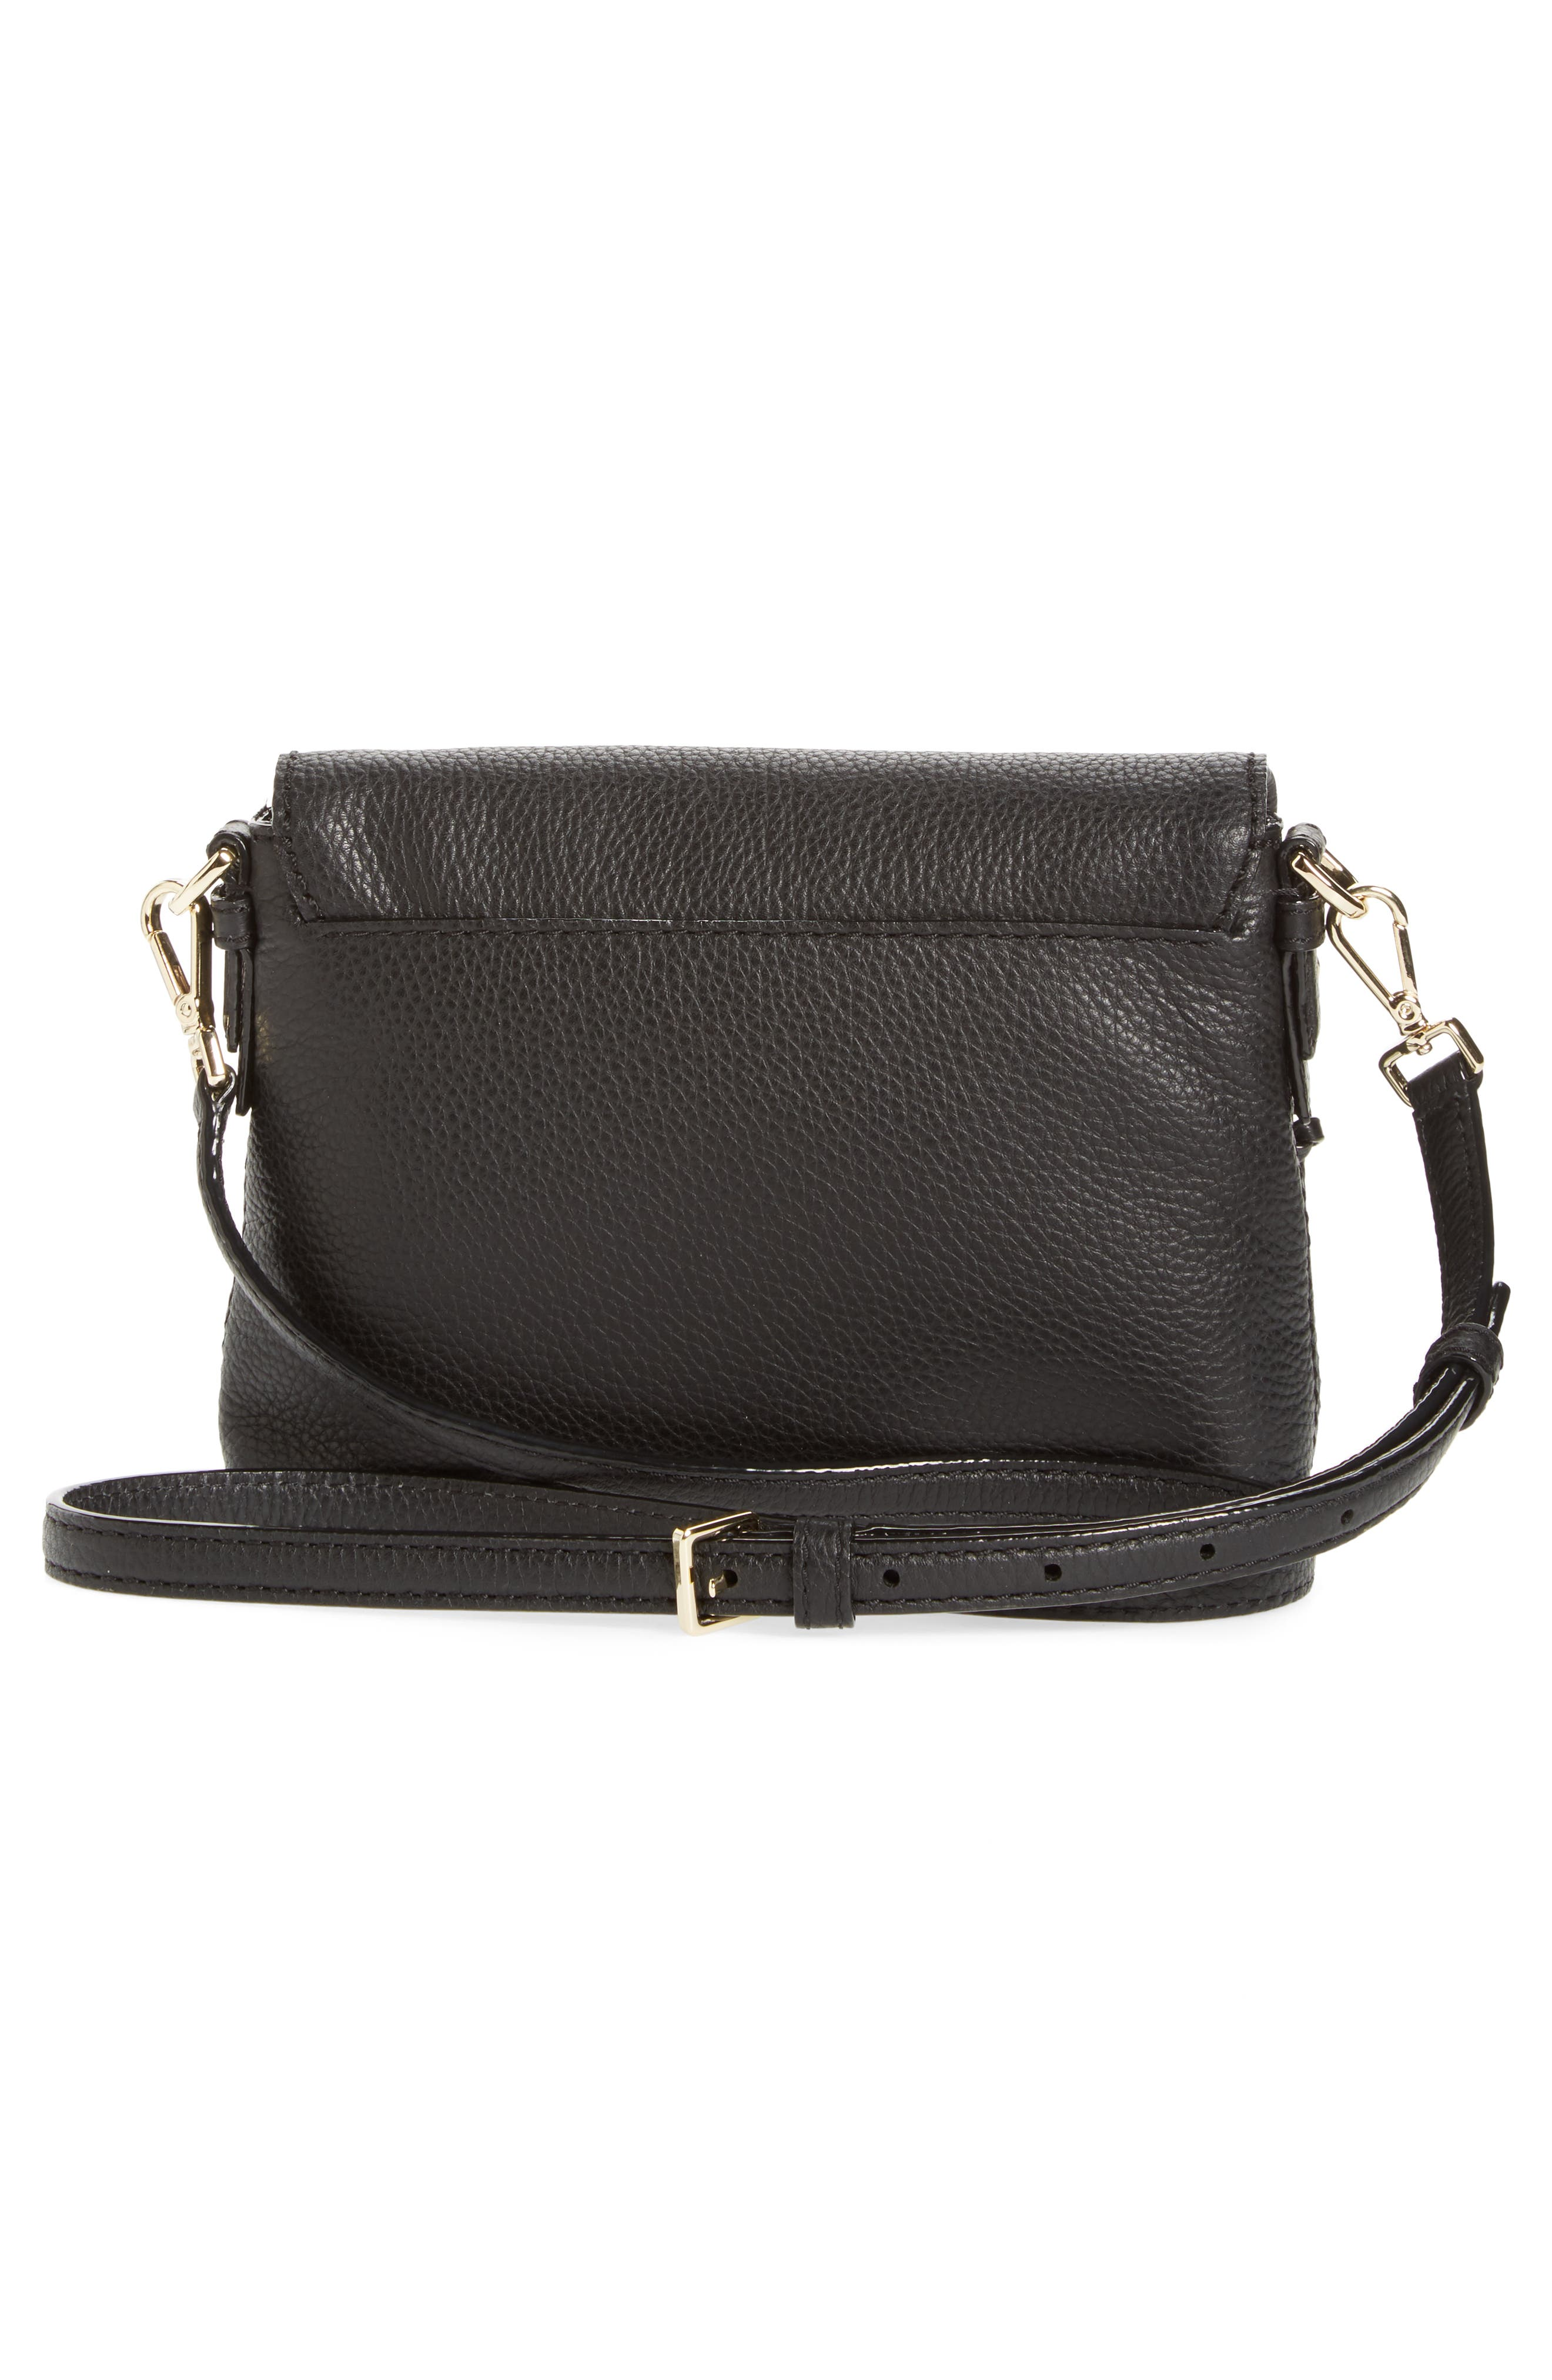 jackson street small harlyn leather crossbody bag,                             Alternate thumbnail 3, color,                             Black